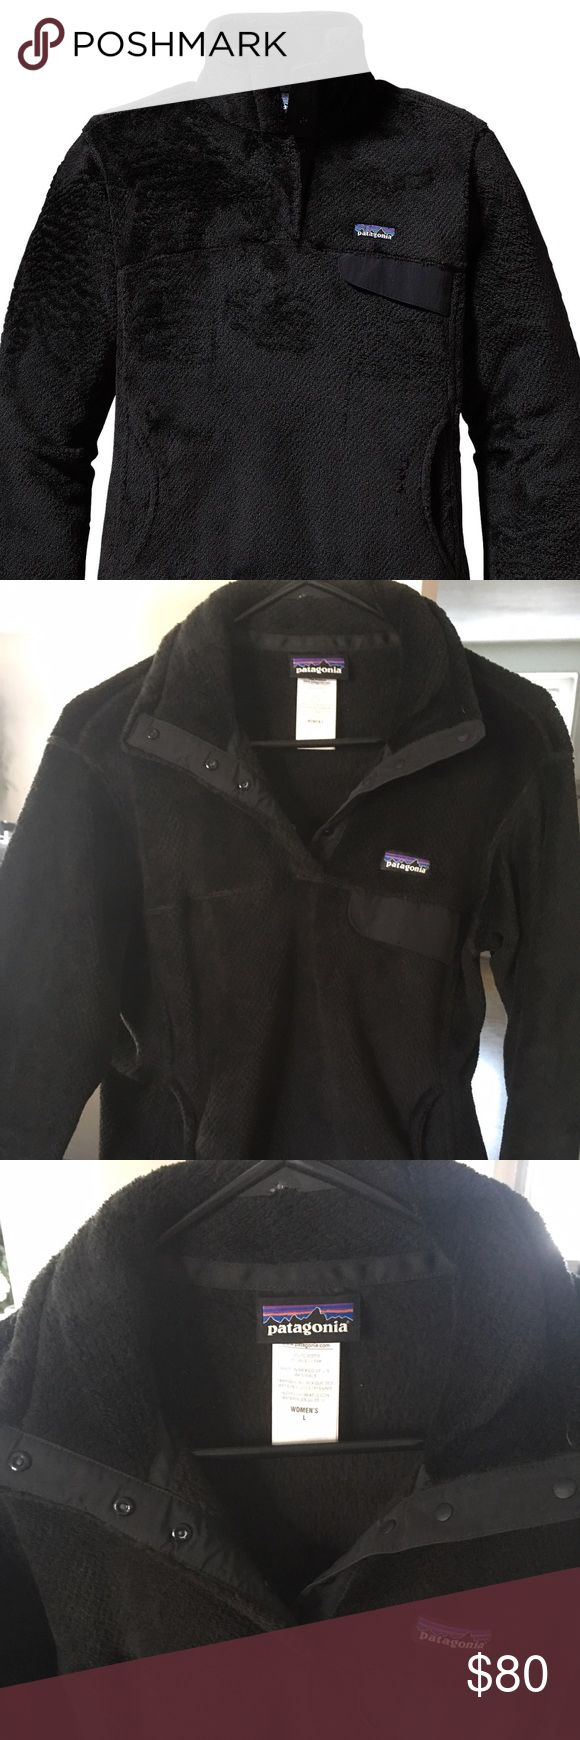 Patagonia Re-Tool Snap Fleece Pullover Re-Tool Snap Patagonia fleece pullover! Basically brand new. Only worn a hand full of times, it's just a little big on me so I don't wear it as often as I would like. Just looking to sell! No trades please. Patagonia Jackets & Coats